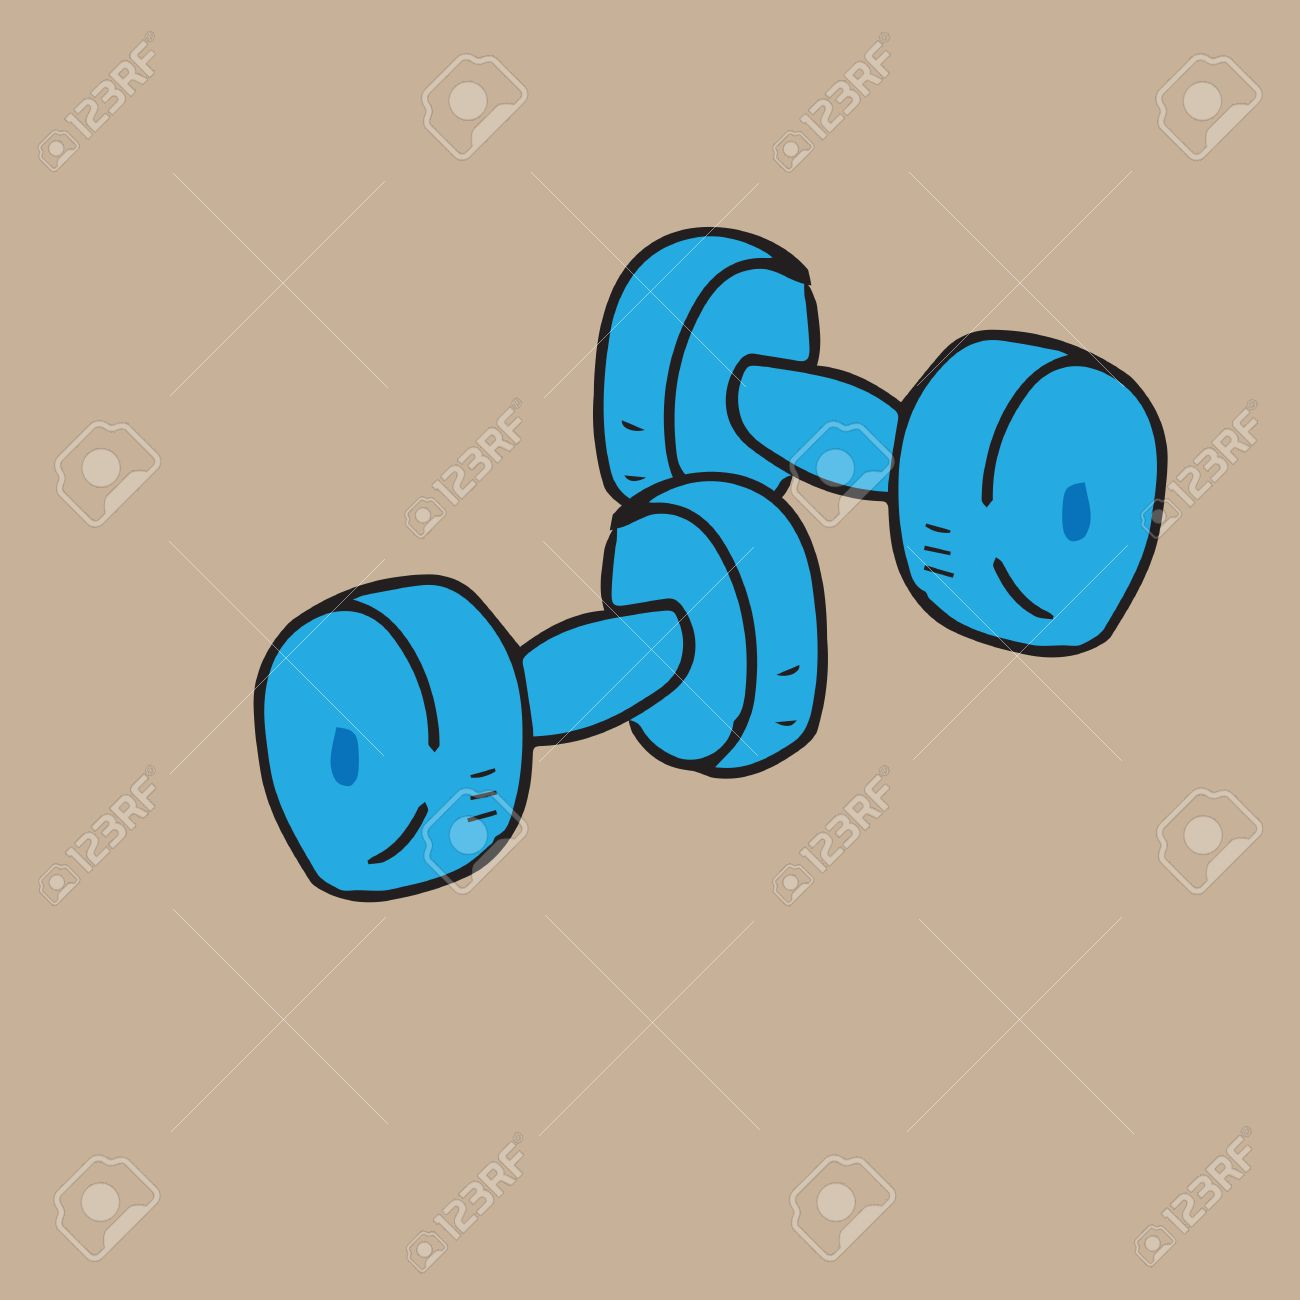 1300x1300 Dumbbells Cartoon Drawing Isolated Royalty Free Cliparts, Vectors